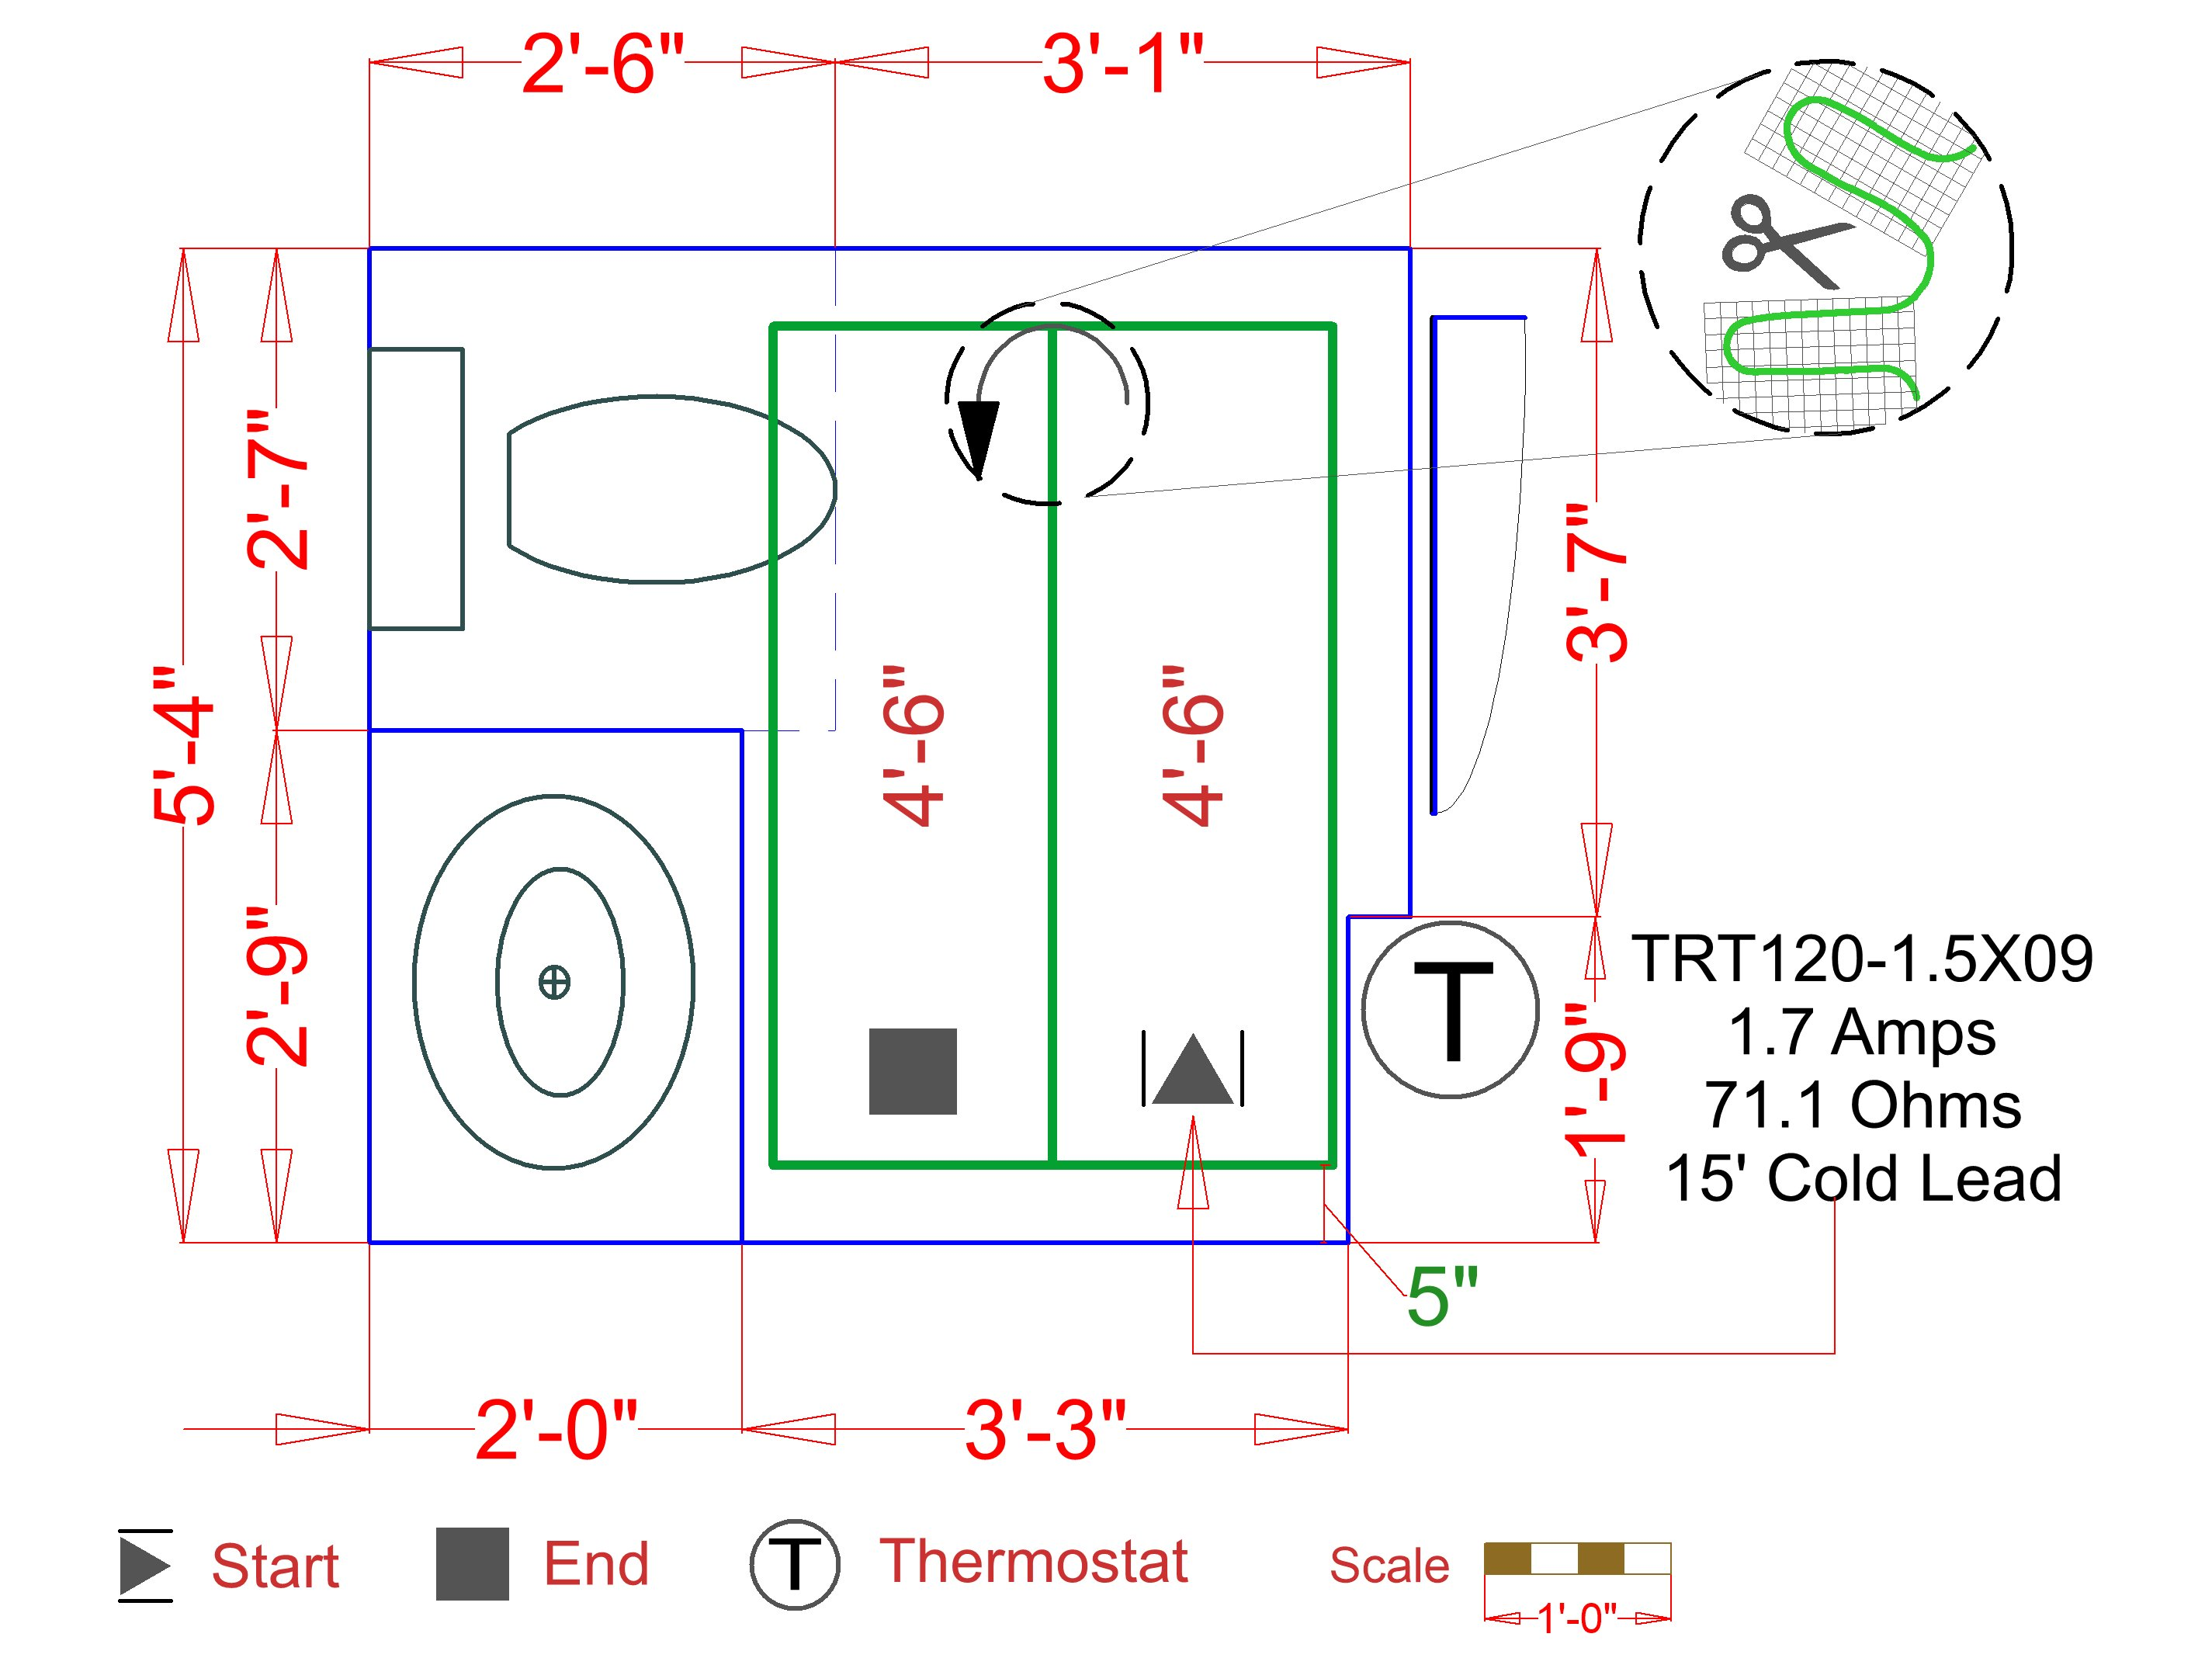 Circuit Check For Testing Floor Heating Systems Warmlyyours Usa Tester Further Work Cable Diagram On Installation Plan Image